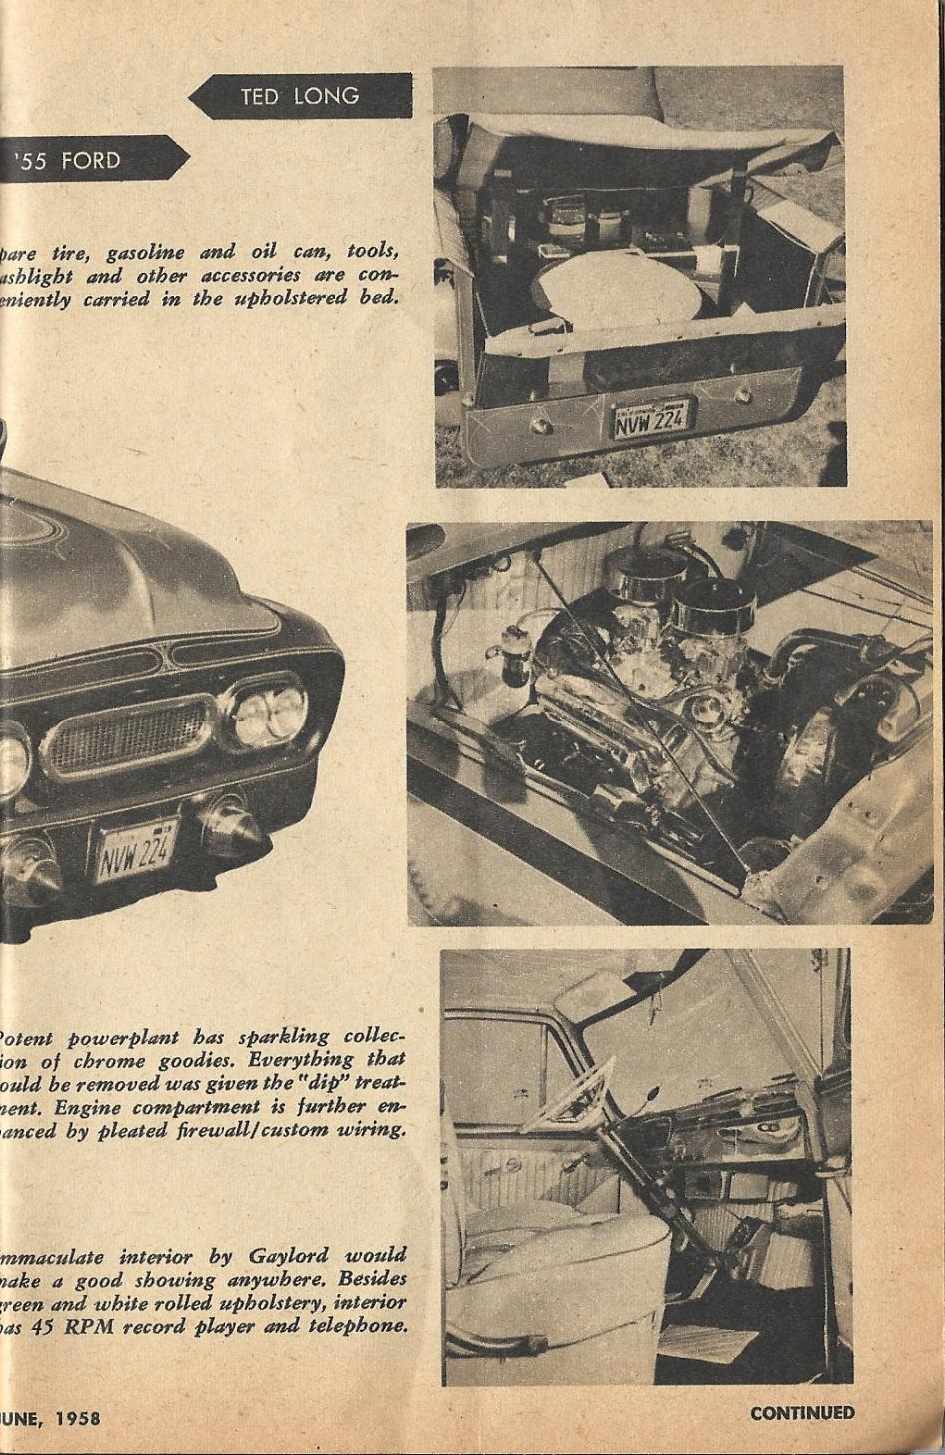 Car Craft - Special Pick Up June 1959 - Pick up Pictorial 1523